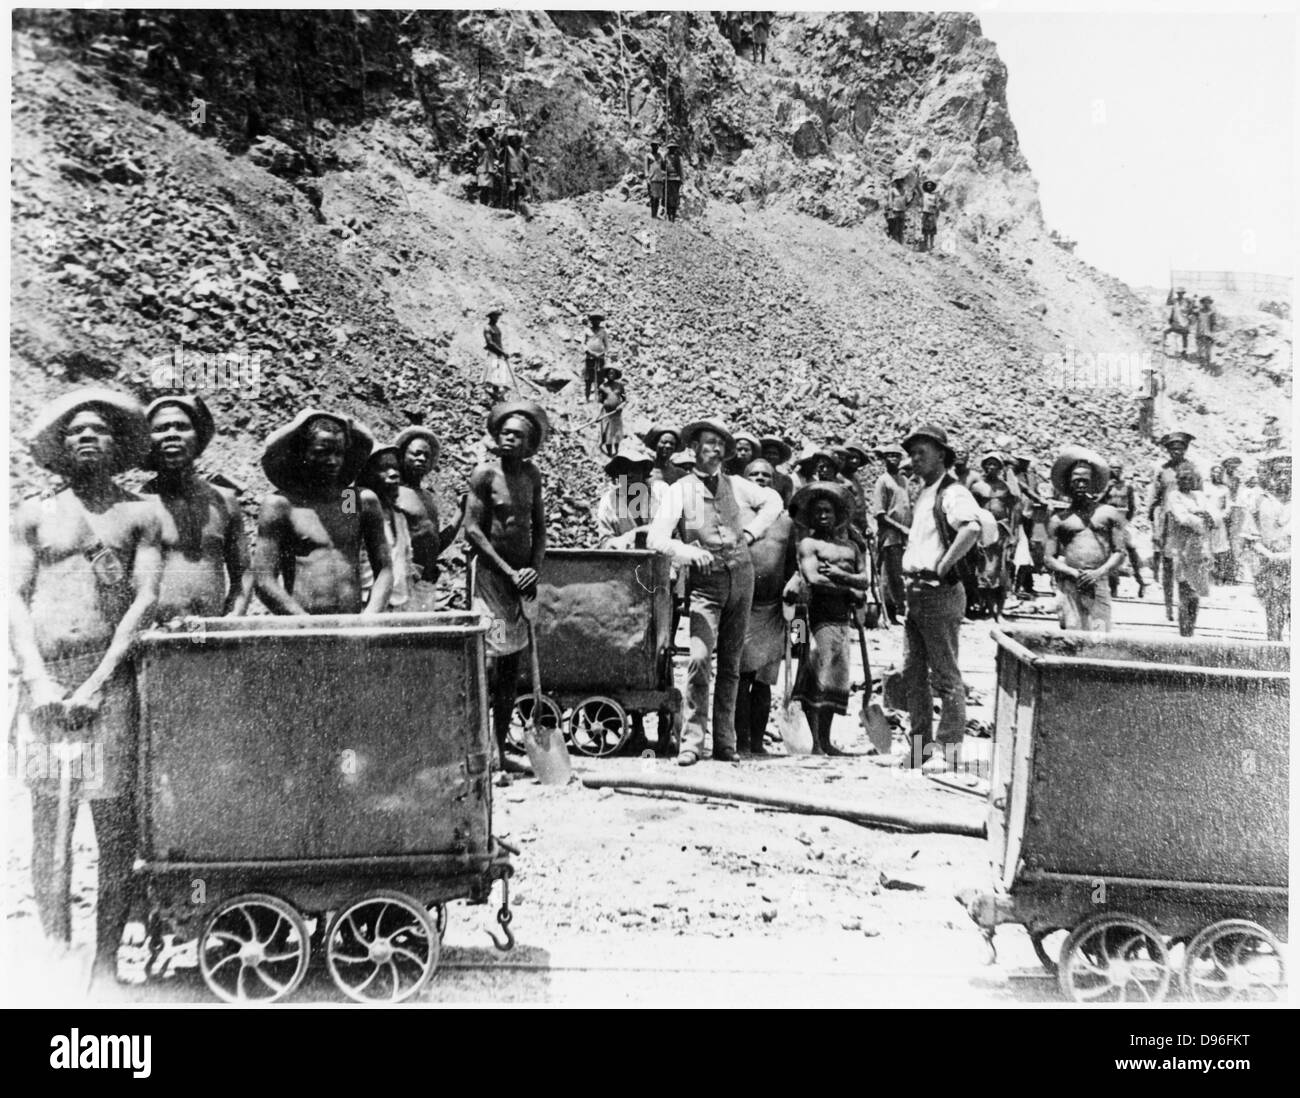 Zulu 'boys' at De Beers diamond mines. From photograph taken c1885. In 1887 and 1888 Cecil Rhodes amalgamated - Stock Image